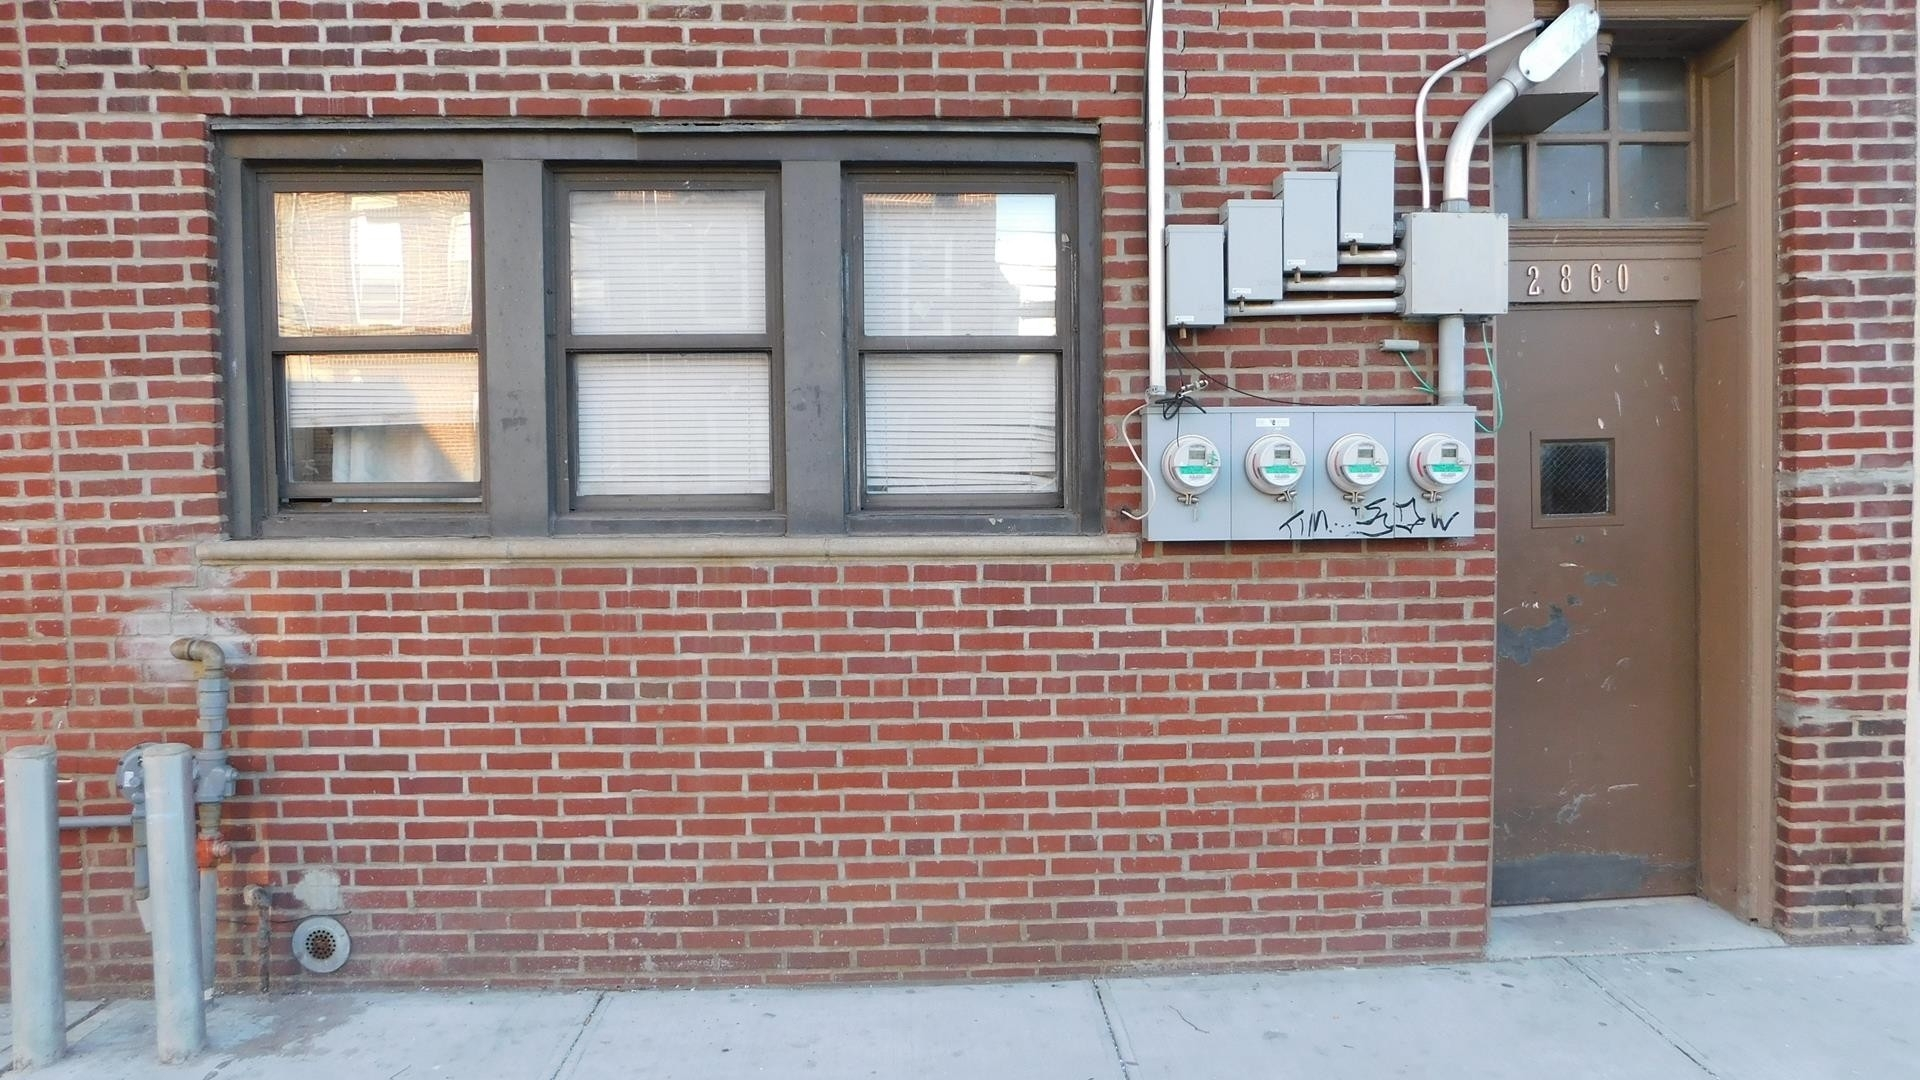 Multi Family Townhouse for Sale at 2860 W 17TH ST , TOWNHOUSE Coney Island, Brooklyn, NY 11224